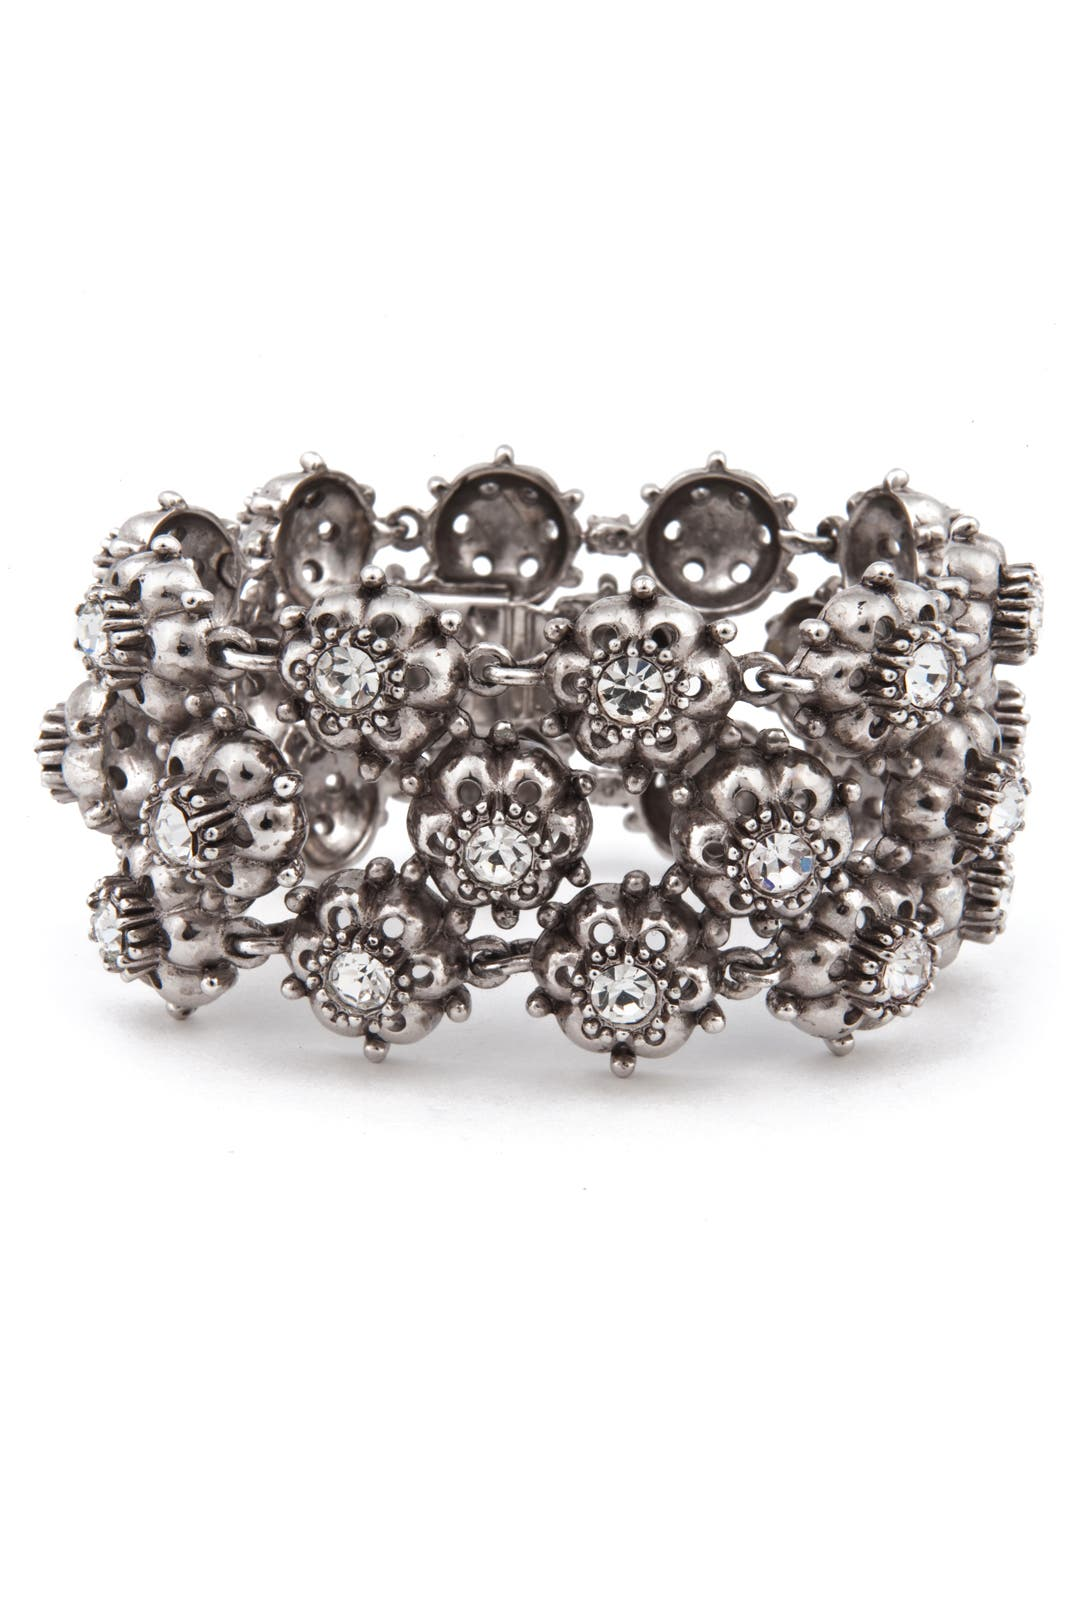 Antique Flower Bracelet by Ciner